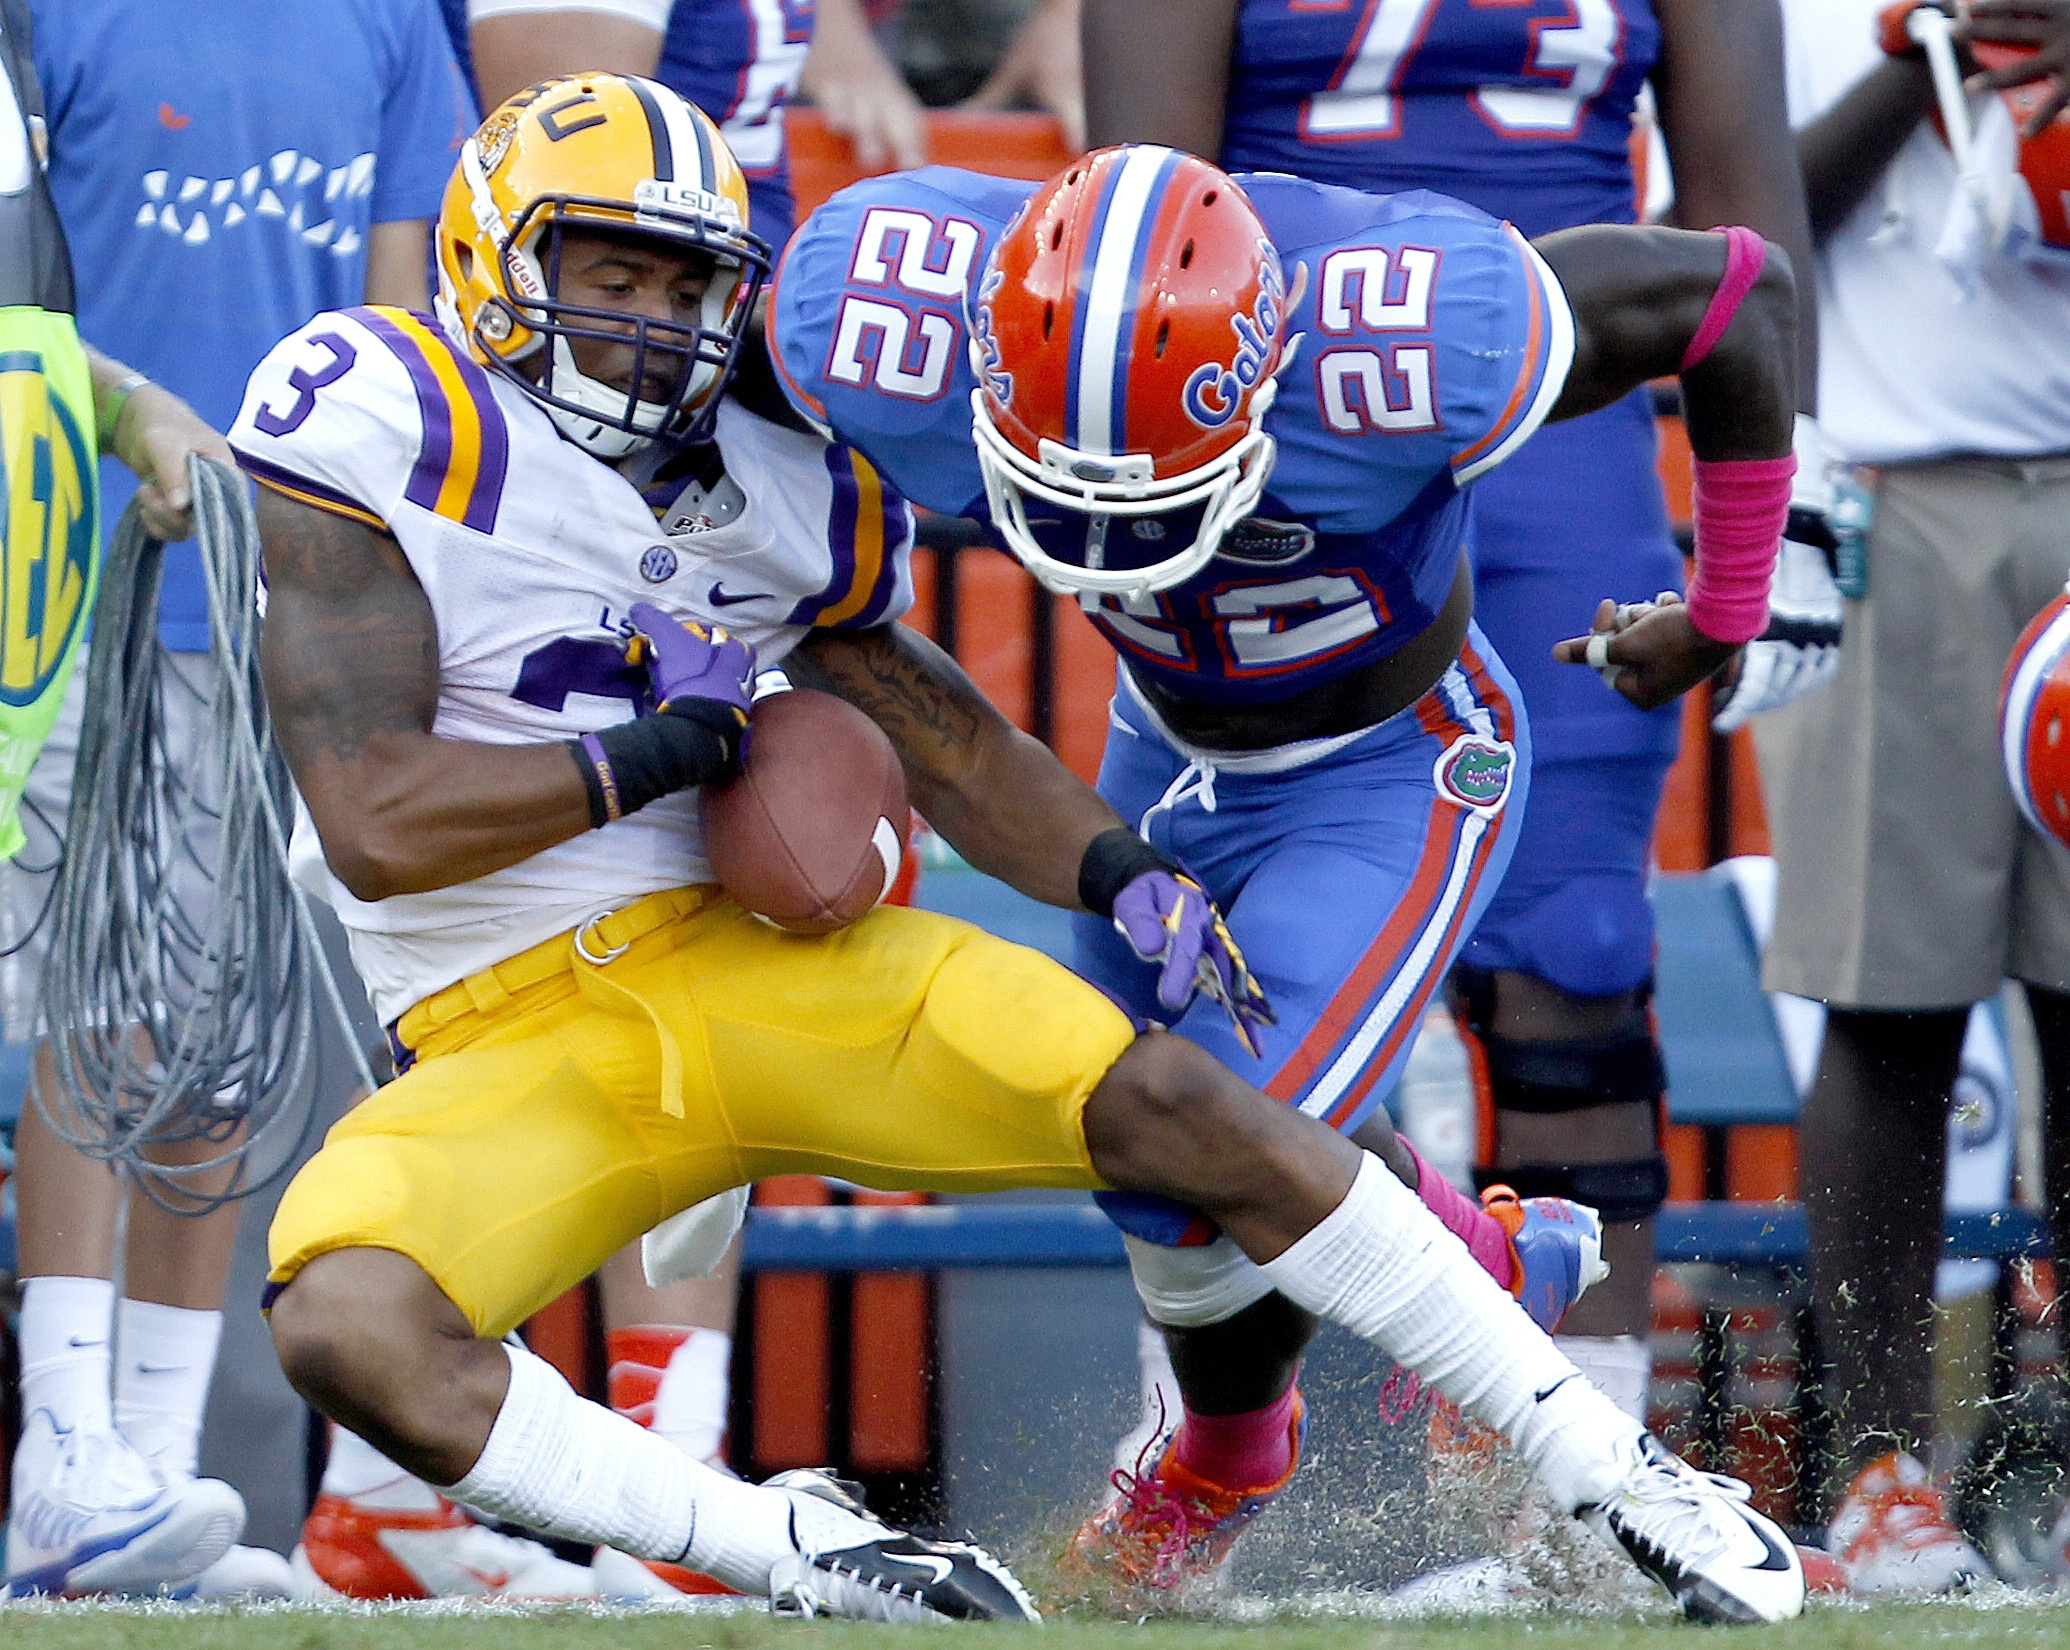 Florida safety Matt Elam forces LSU wide receiver Odell Beckham Jr. to fumble the ball after a long reception during last year's matchup. Beckham is coming off one of the best games of his career in a victory at Mississippi State last weekend. LSU hosts the Gators today.